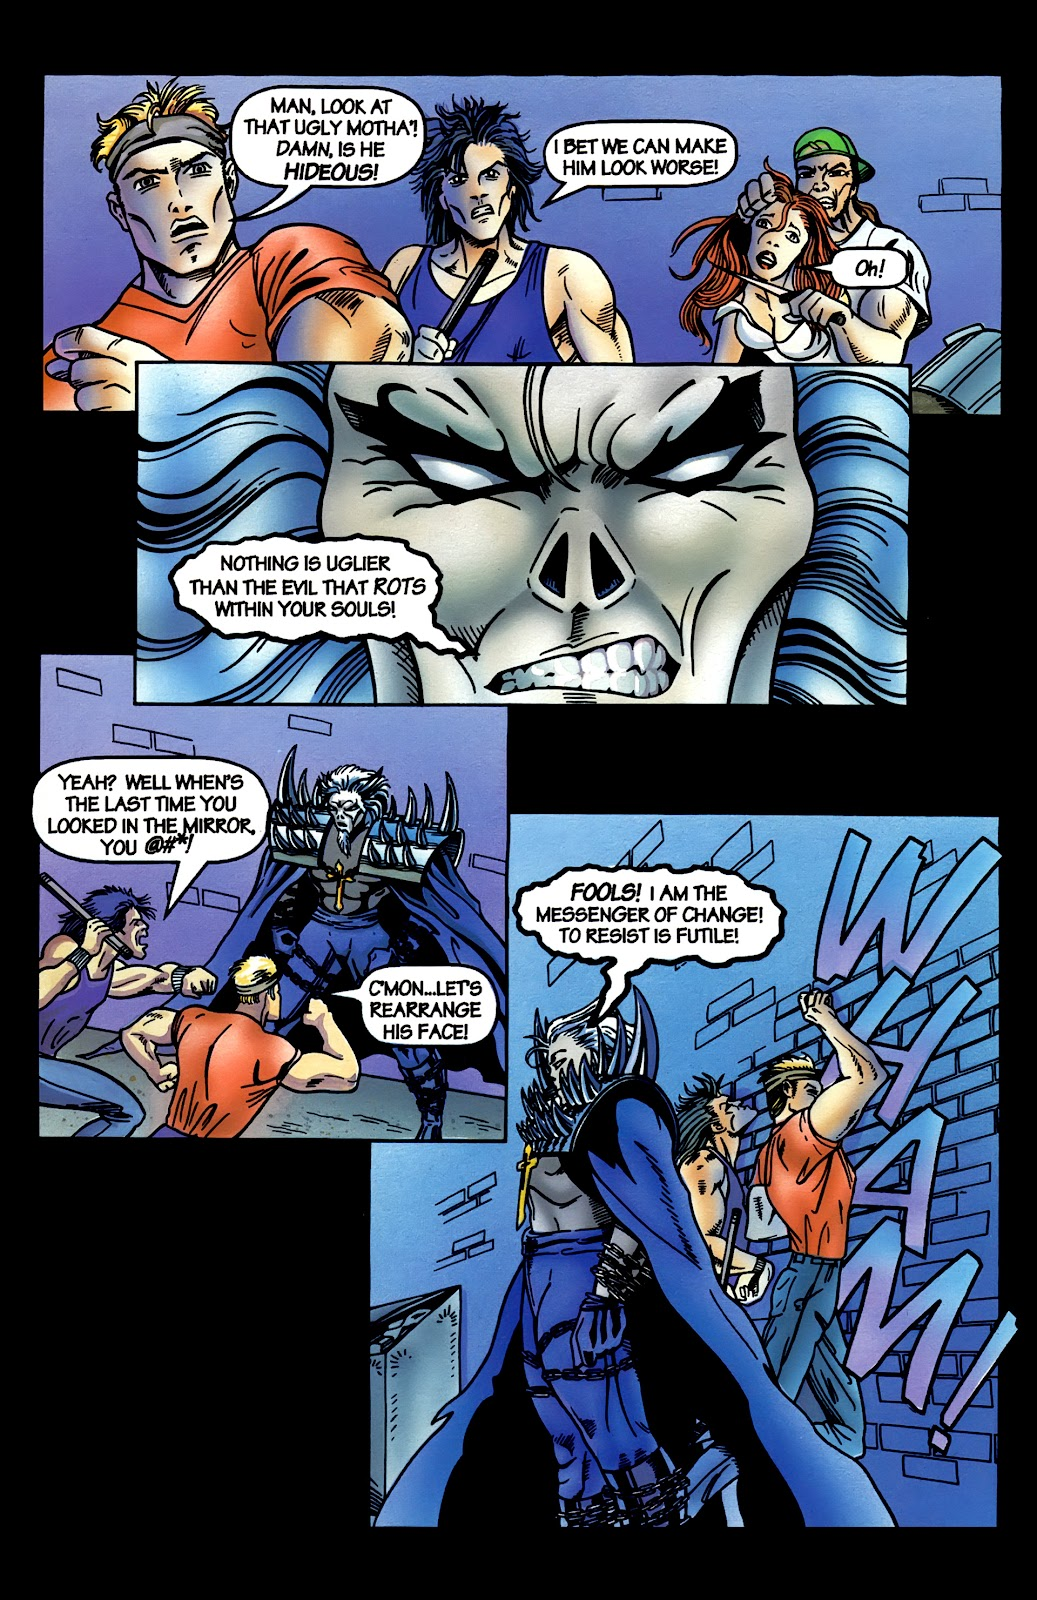 Read online Perg comic -  Issue #5 - 6